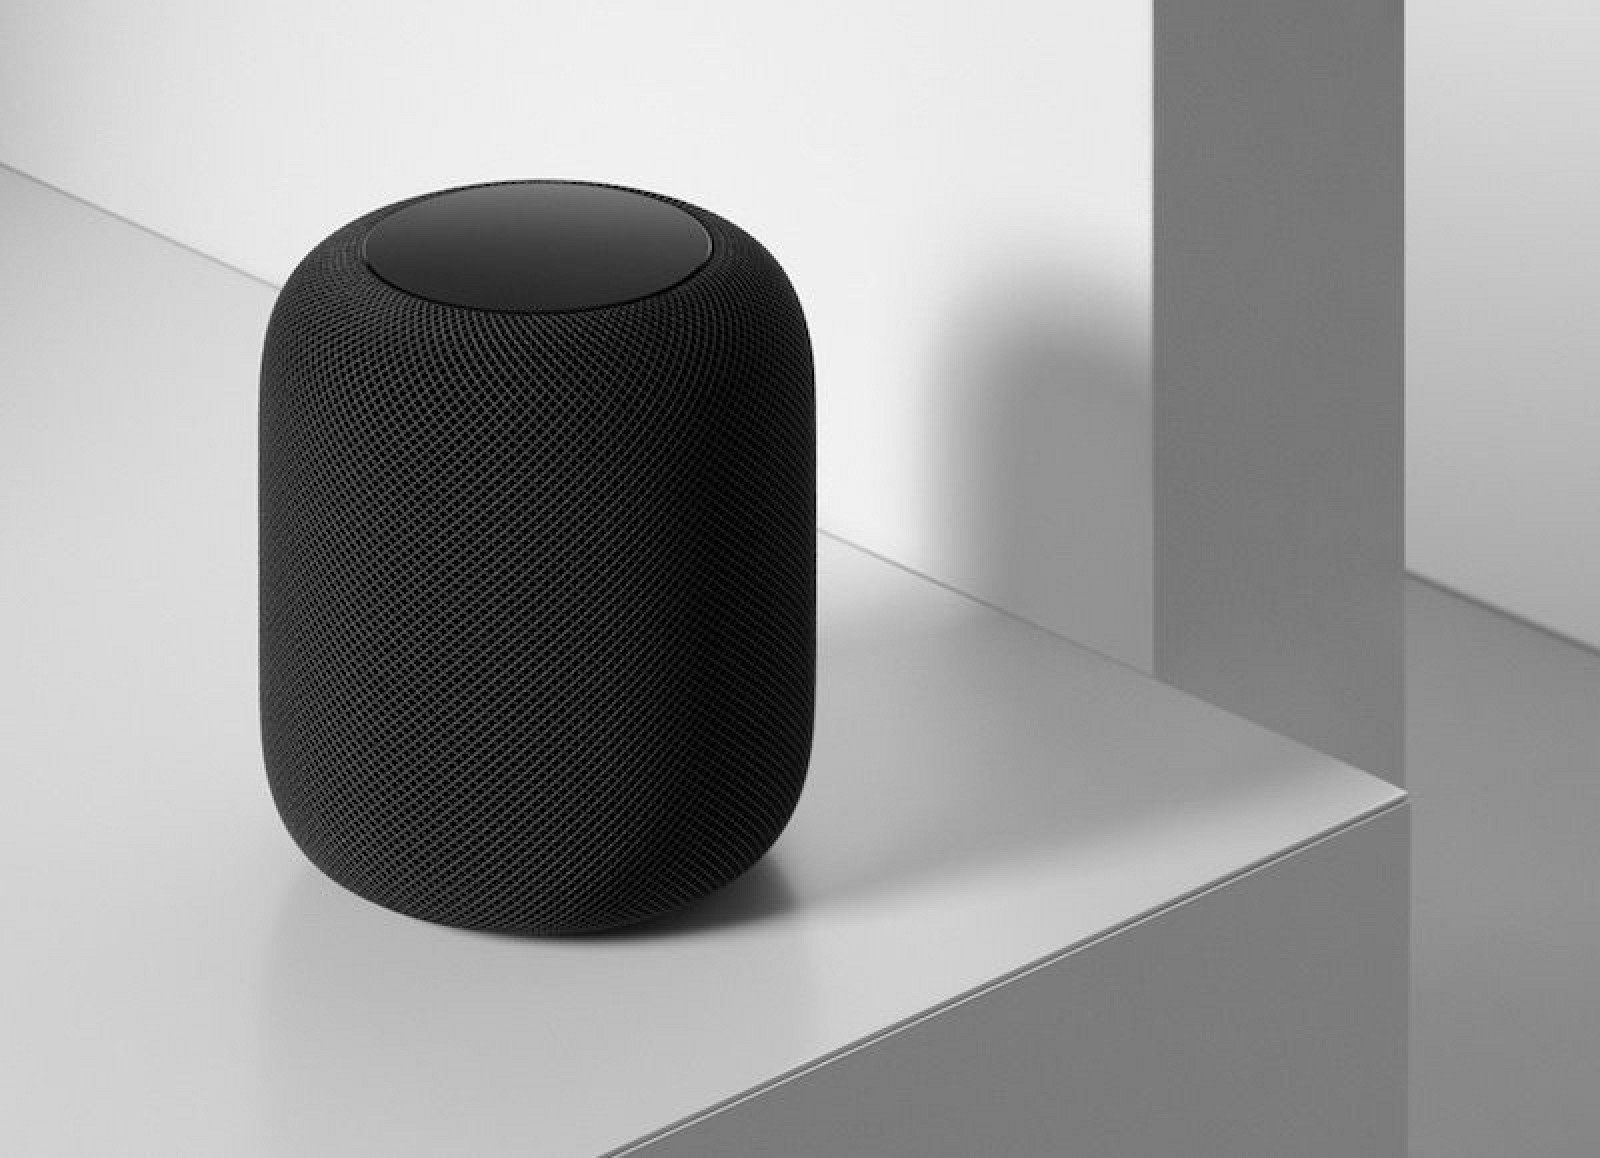 HomePod Struggling to Gain Market Share Alongside Cheaper Amazon Echo and Google Home Speakers